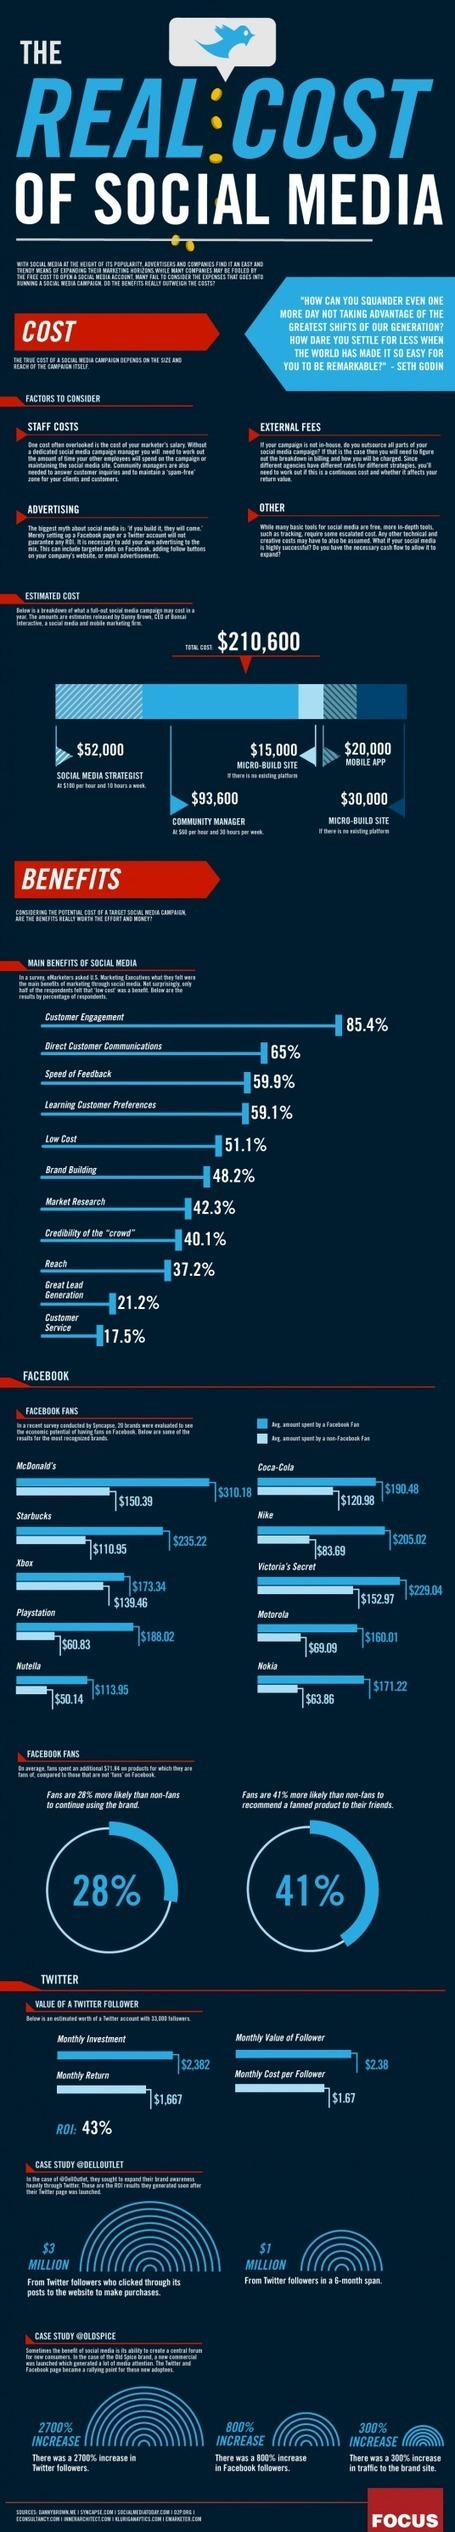 noInfographic: The Real Cost Of Social Media - ContentDJ Blog   Brand Love   Scoop.it